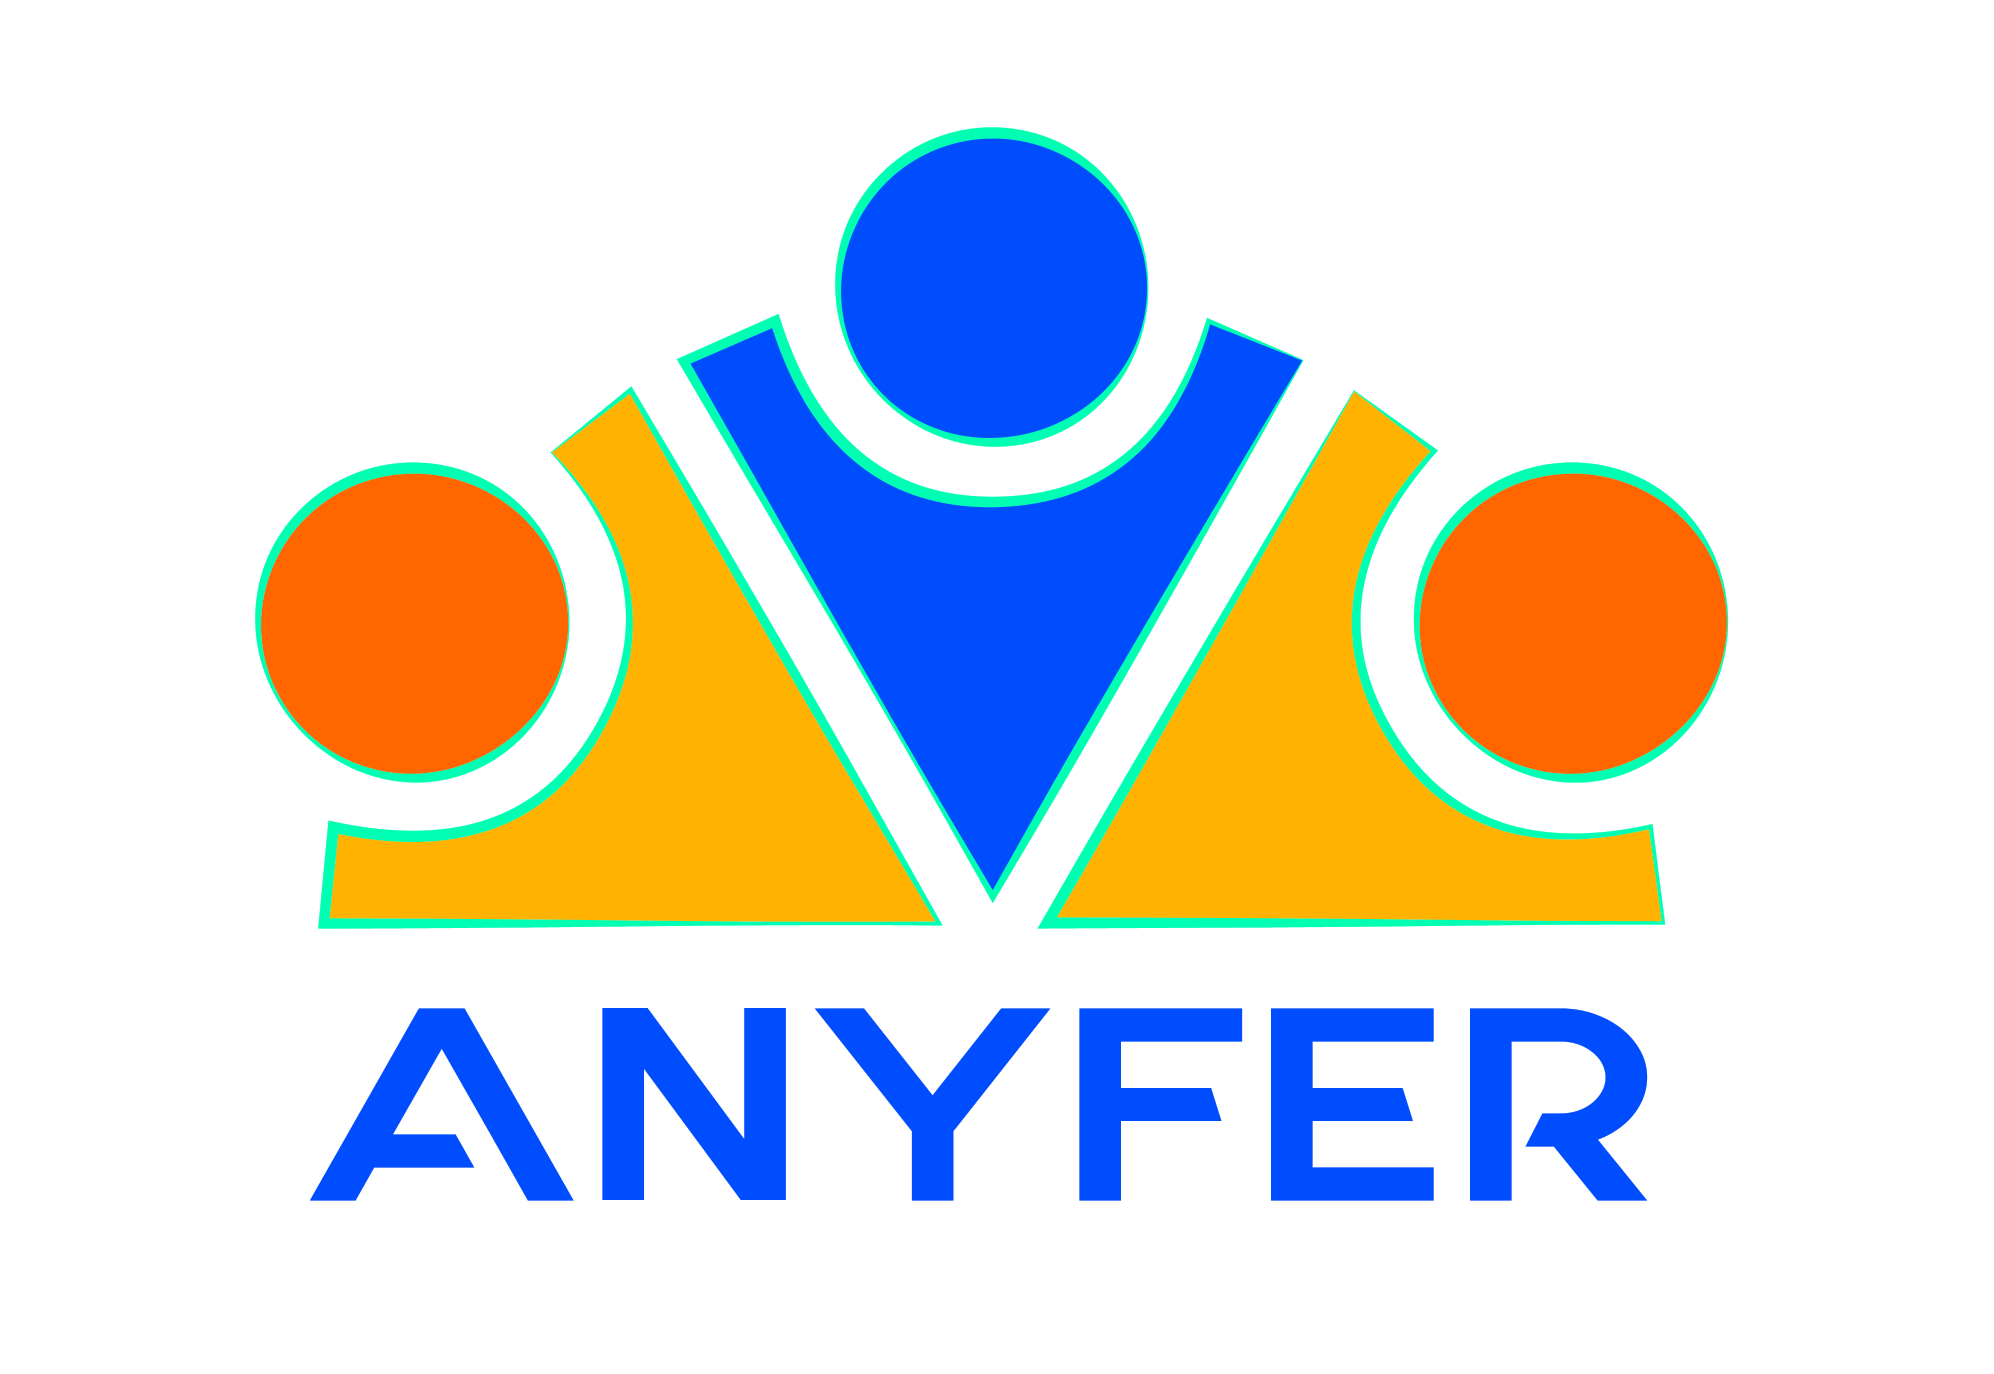 Anyfer - Windsinger Shop